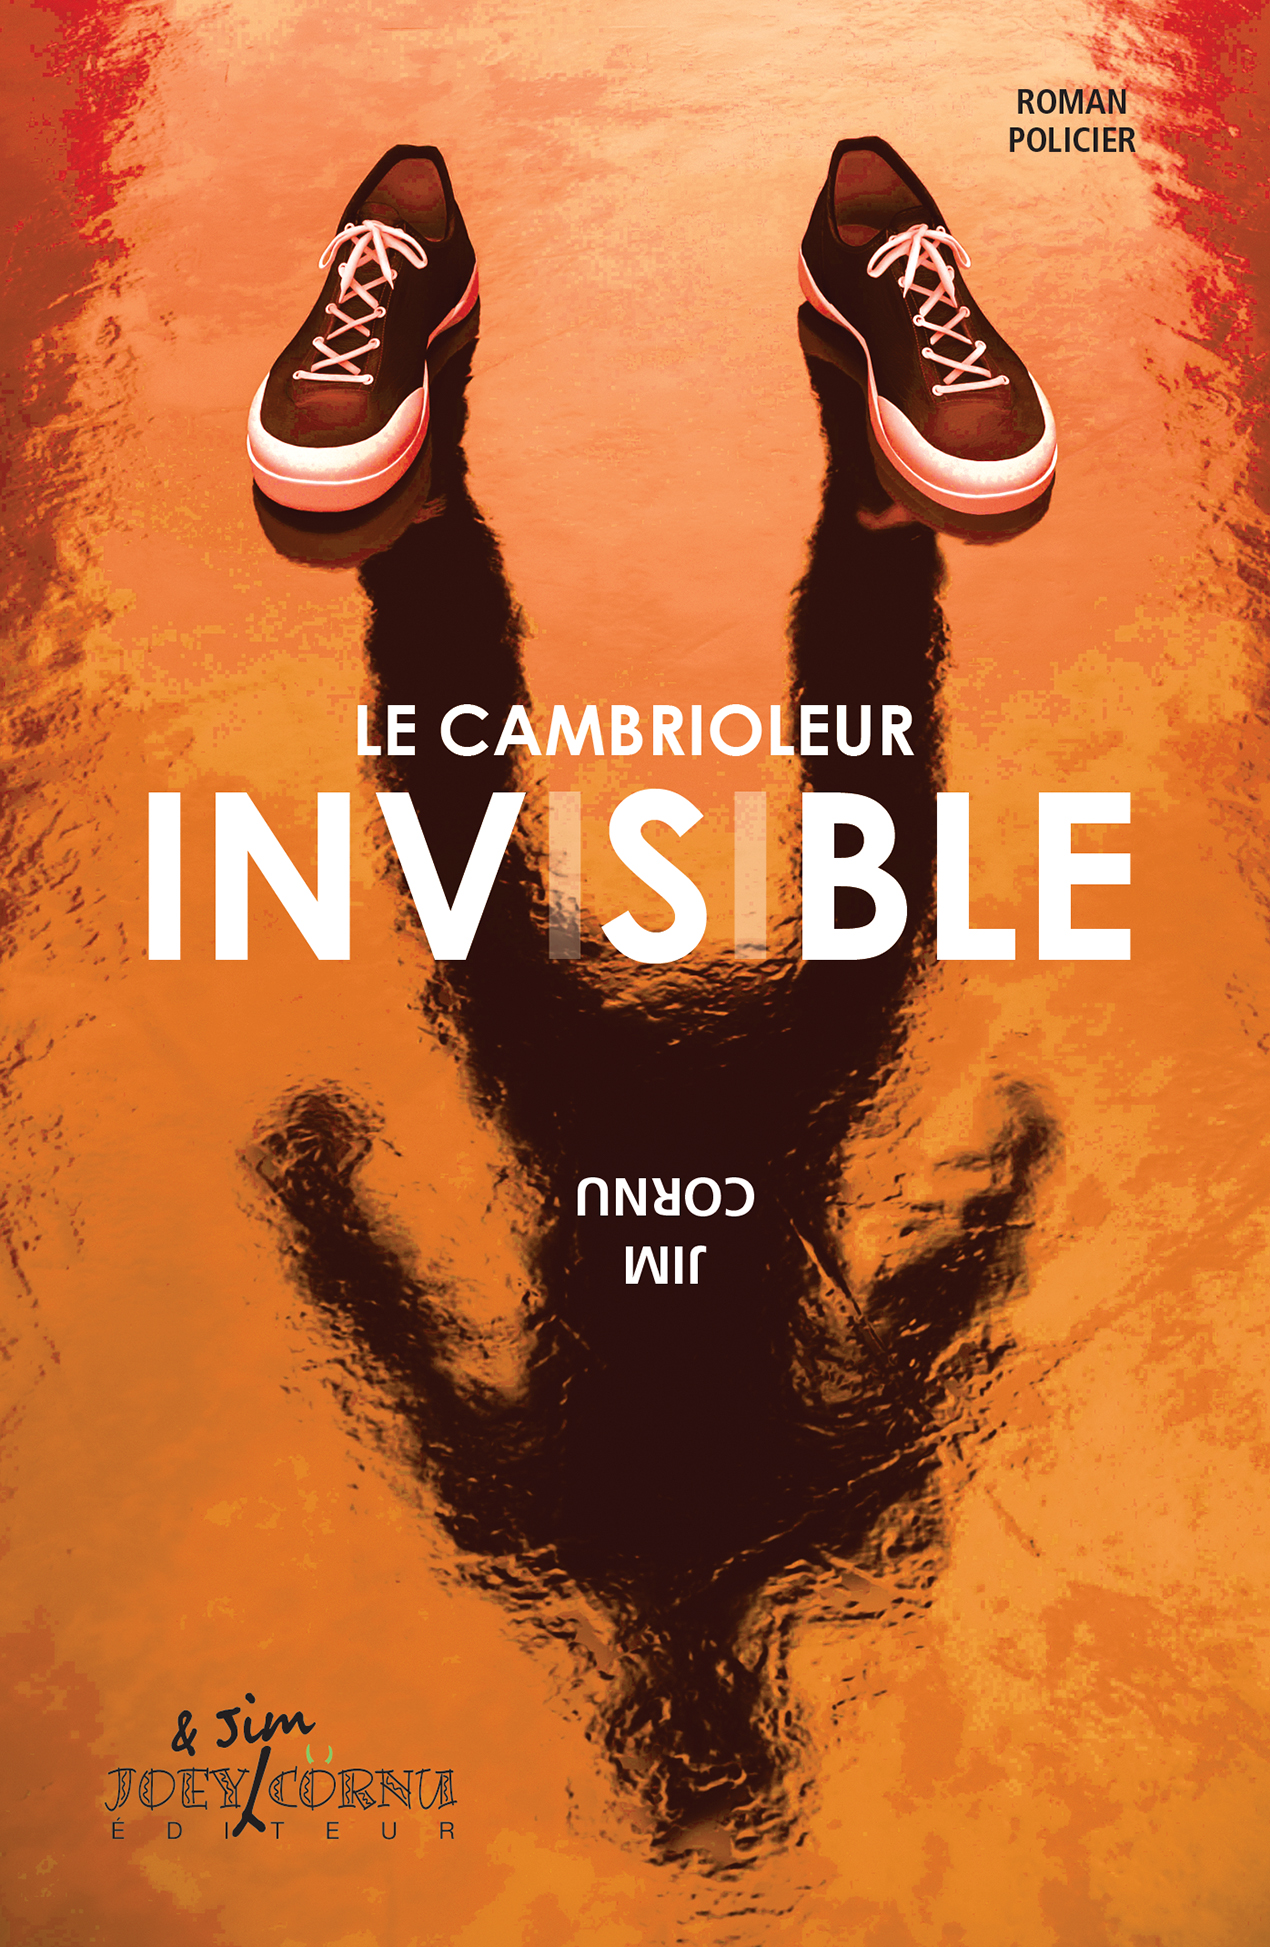 Le cambrioleur invisible